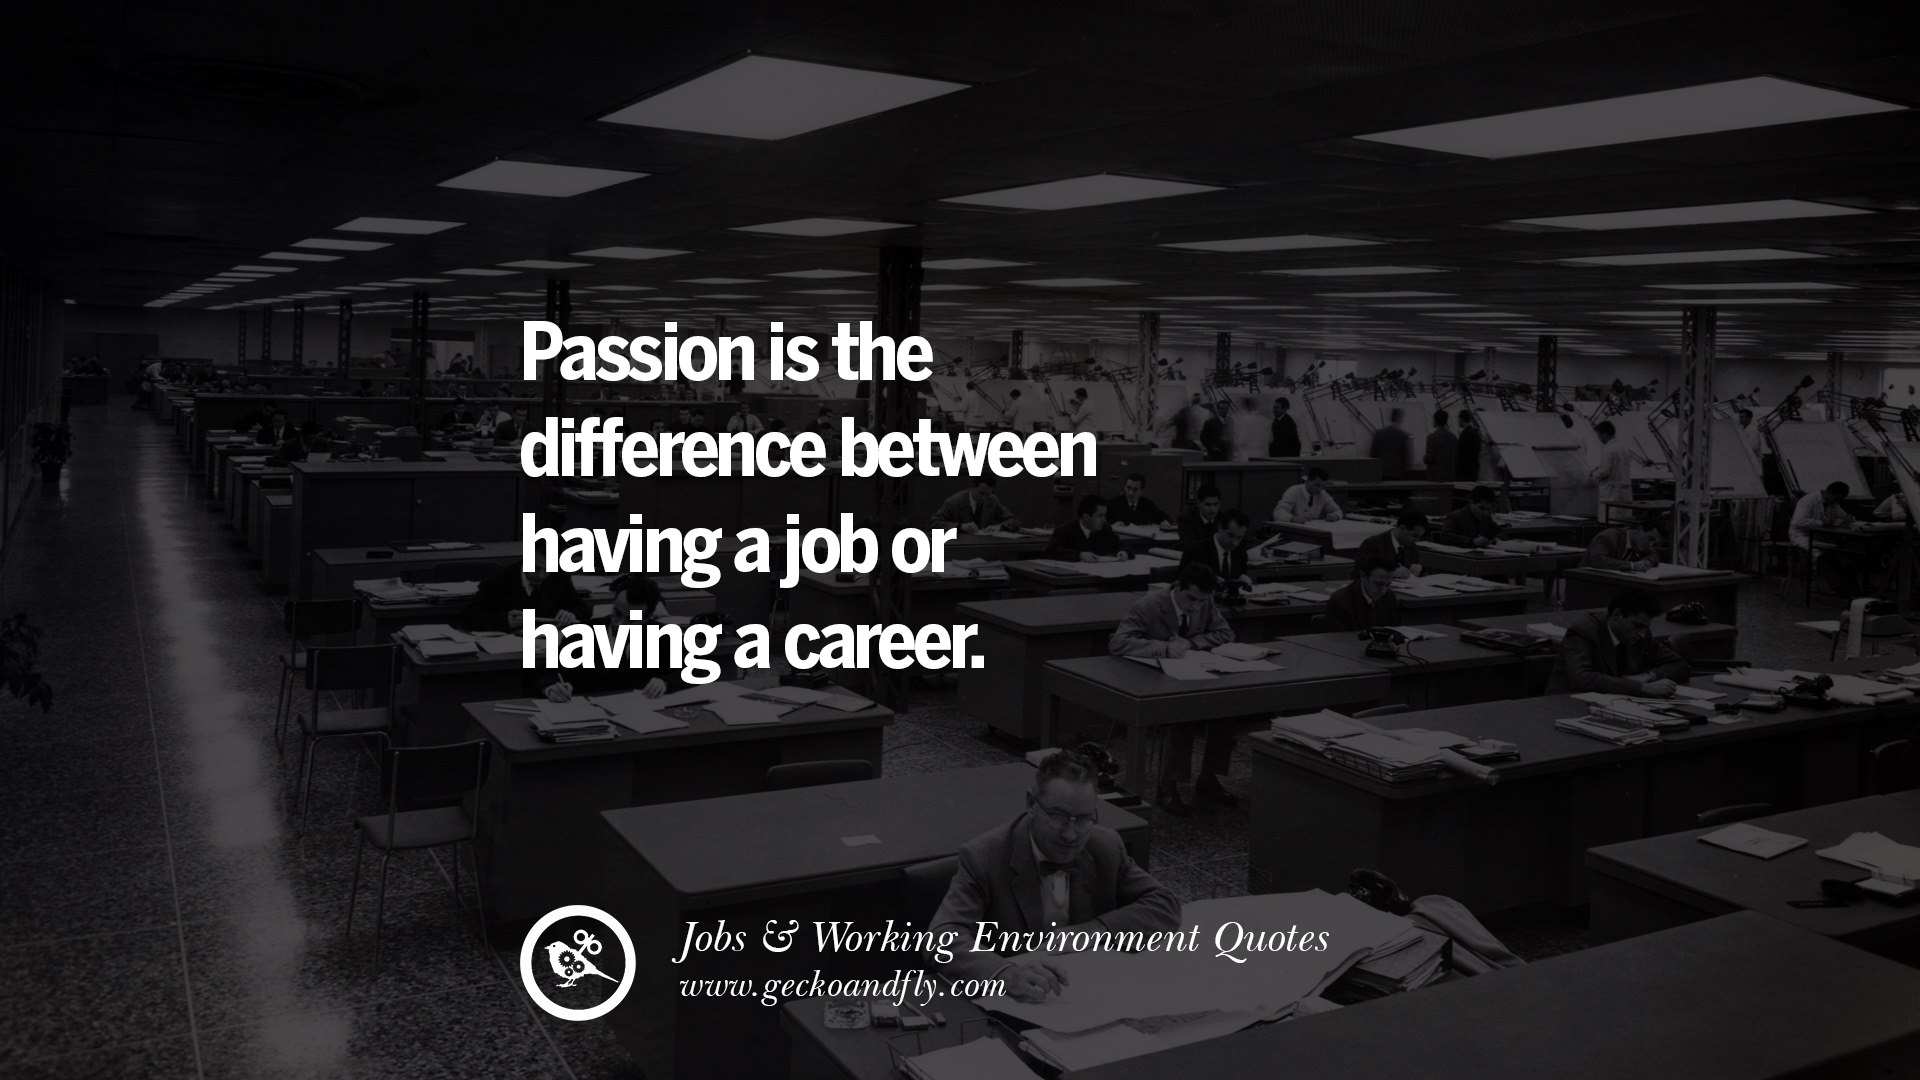 50 Quotes On Passion At Work And Productivity That Lead To ...